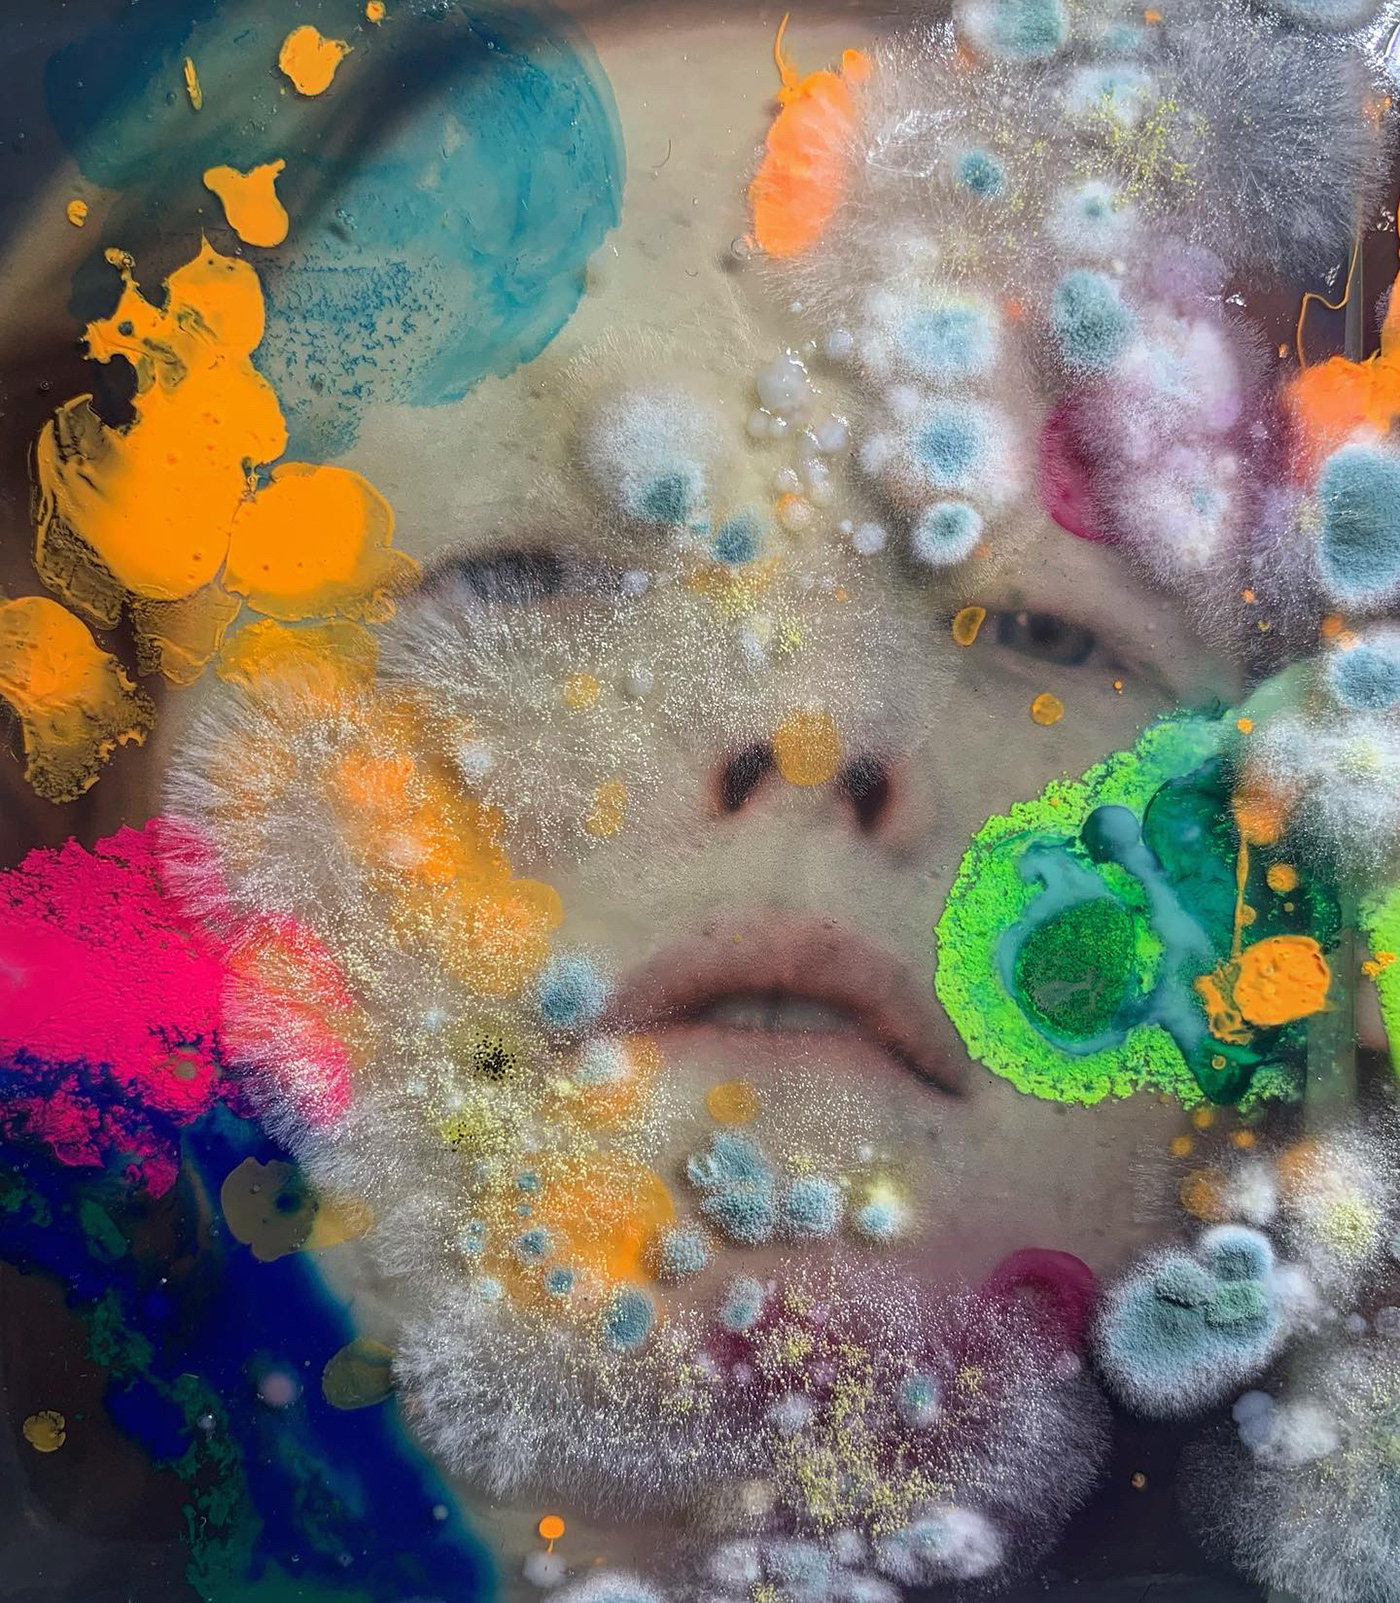 art Bacteria biology colour design face faces FINEART Fungi grow laboratory micro mold pattern portrait science texture zoom